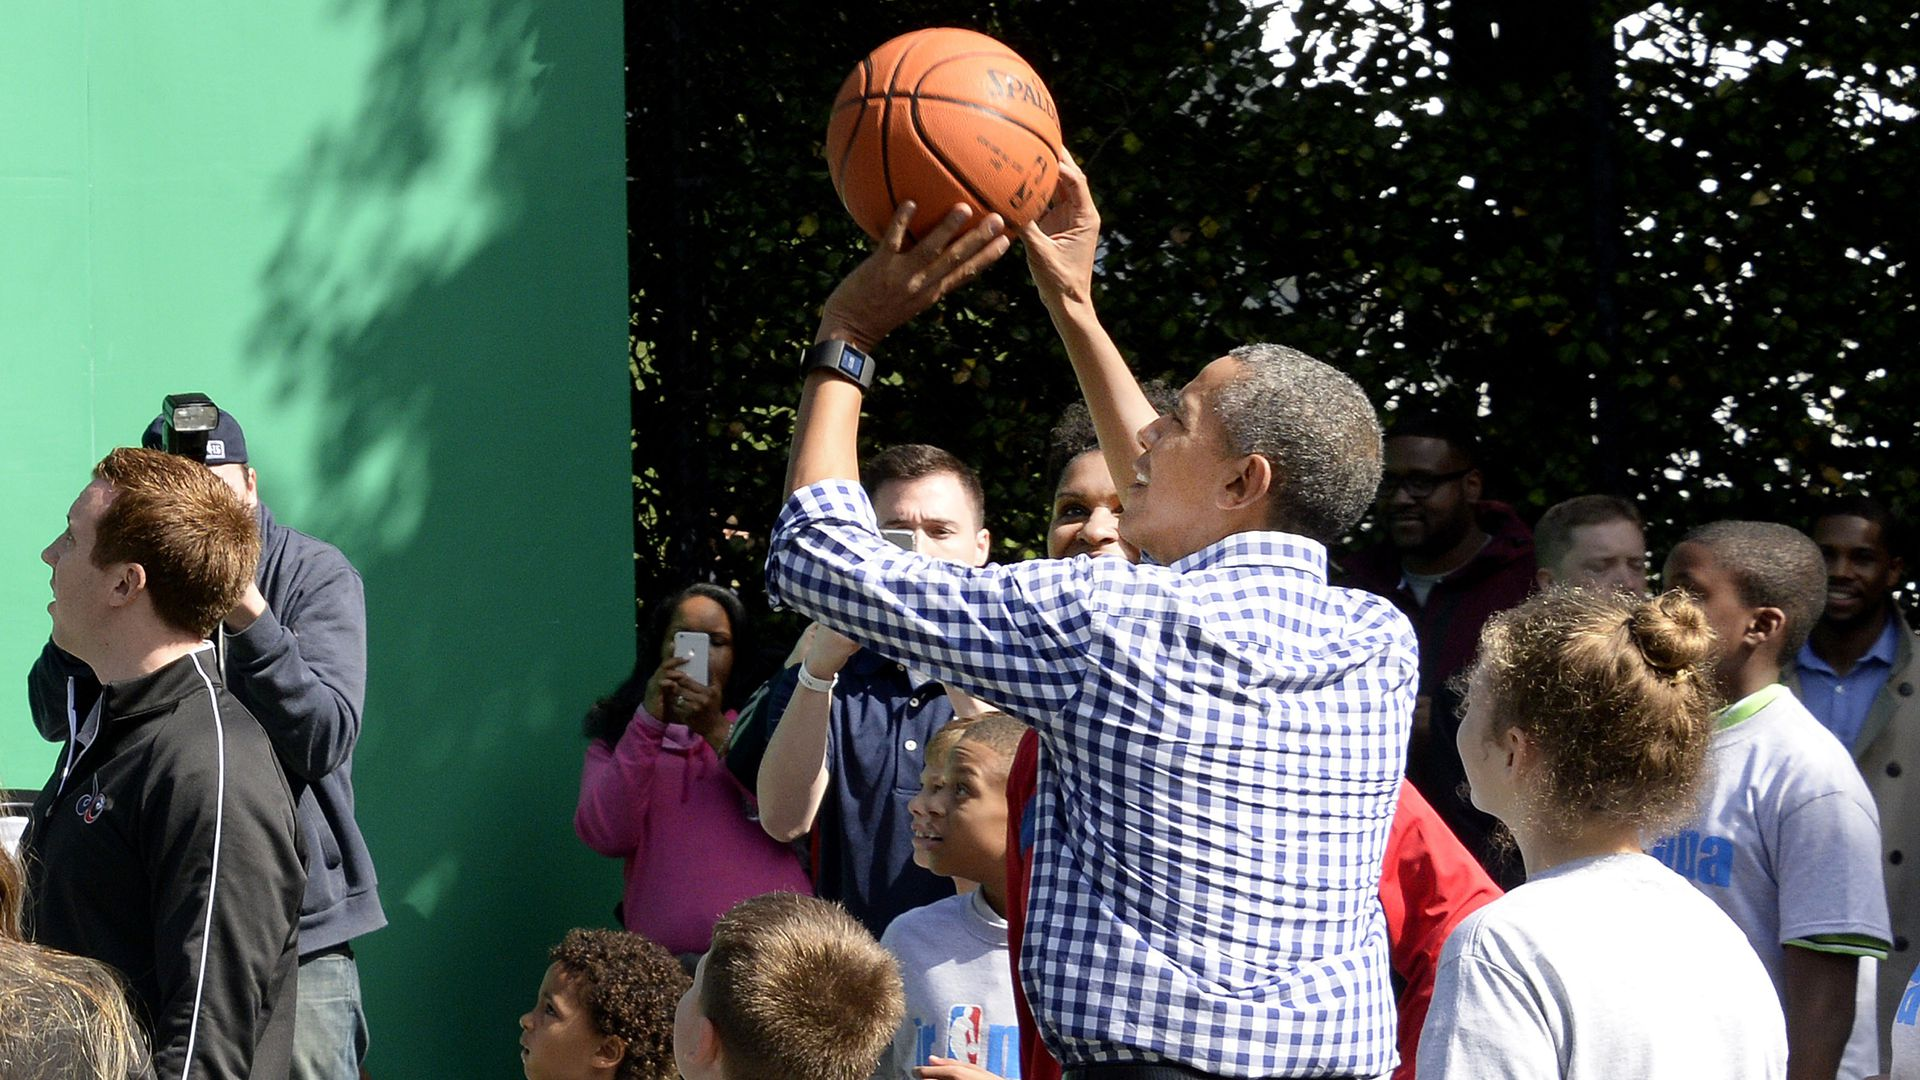 Barack Obama wants to help the NBA launch a new African league